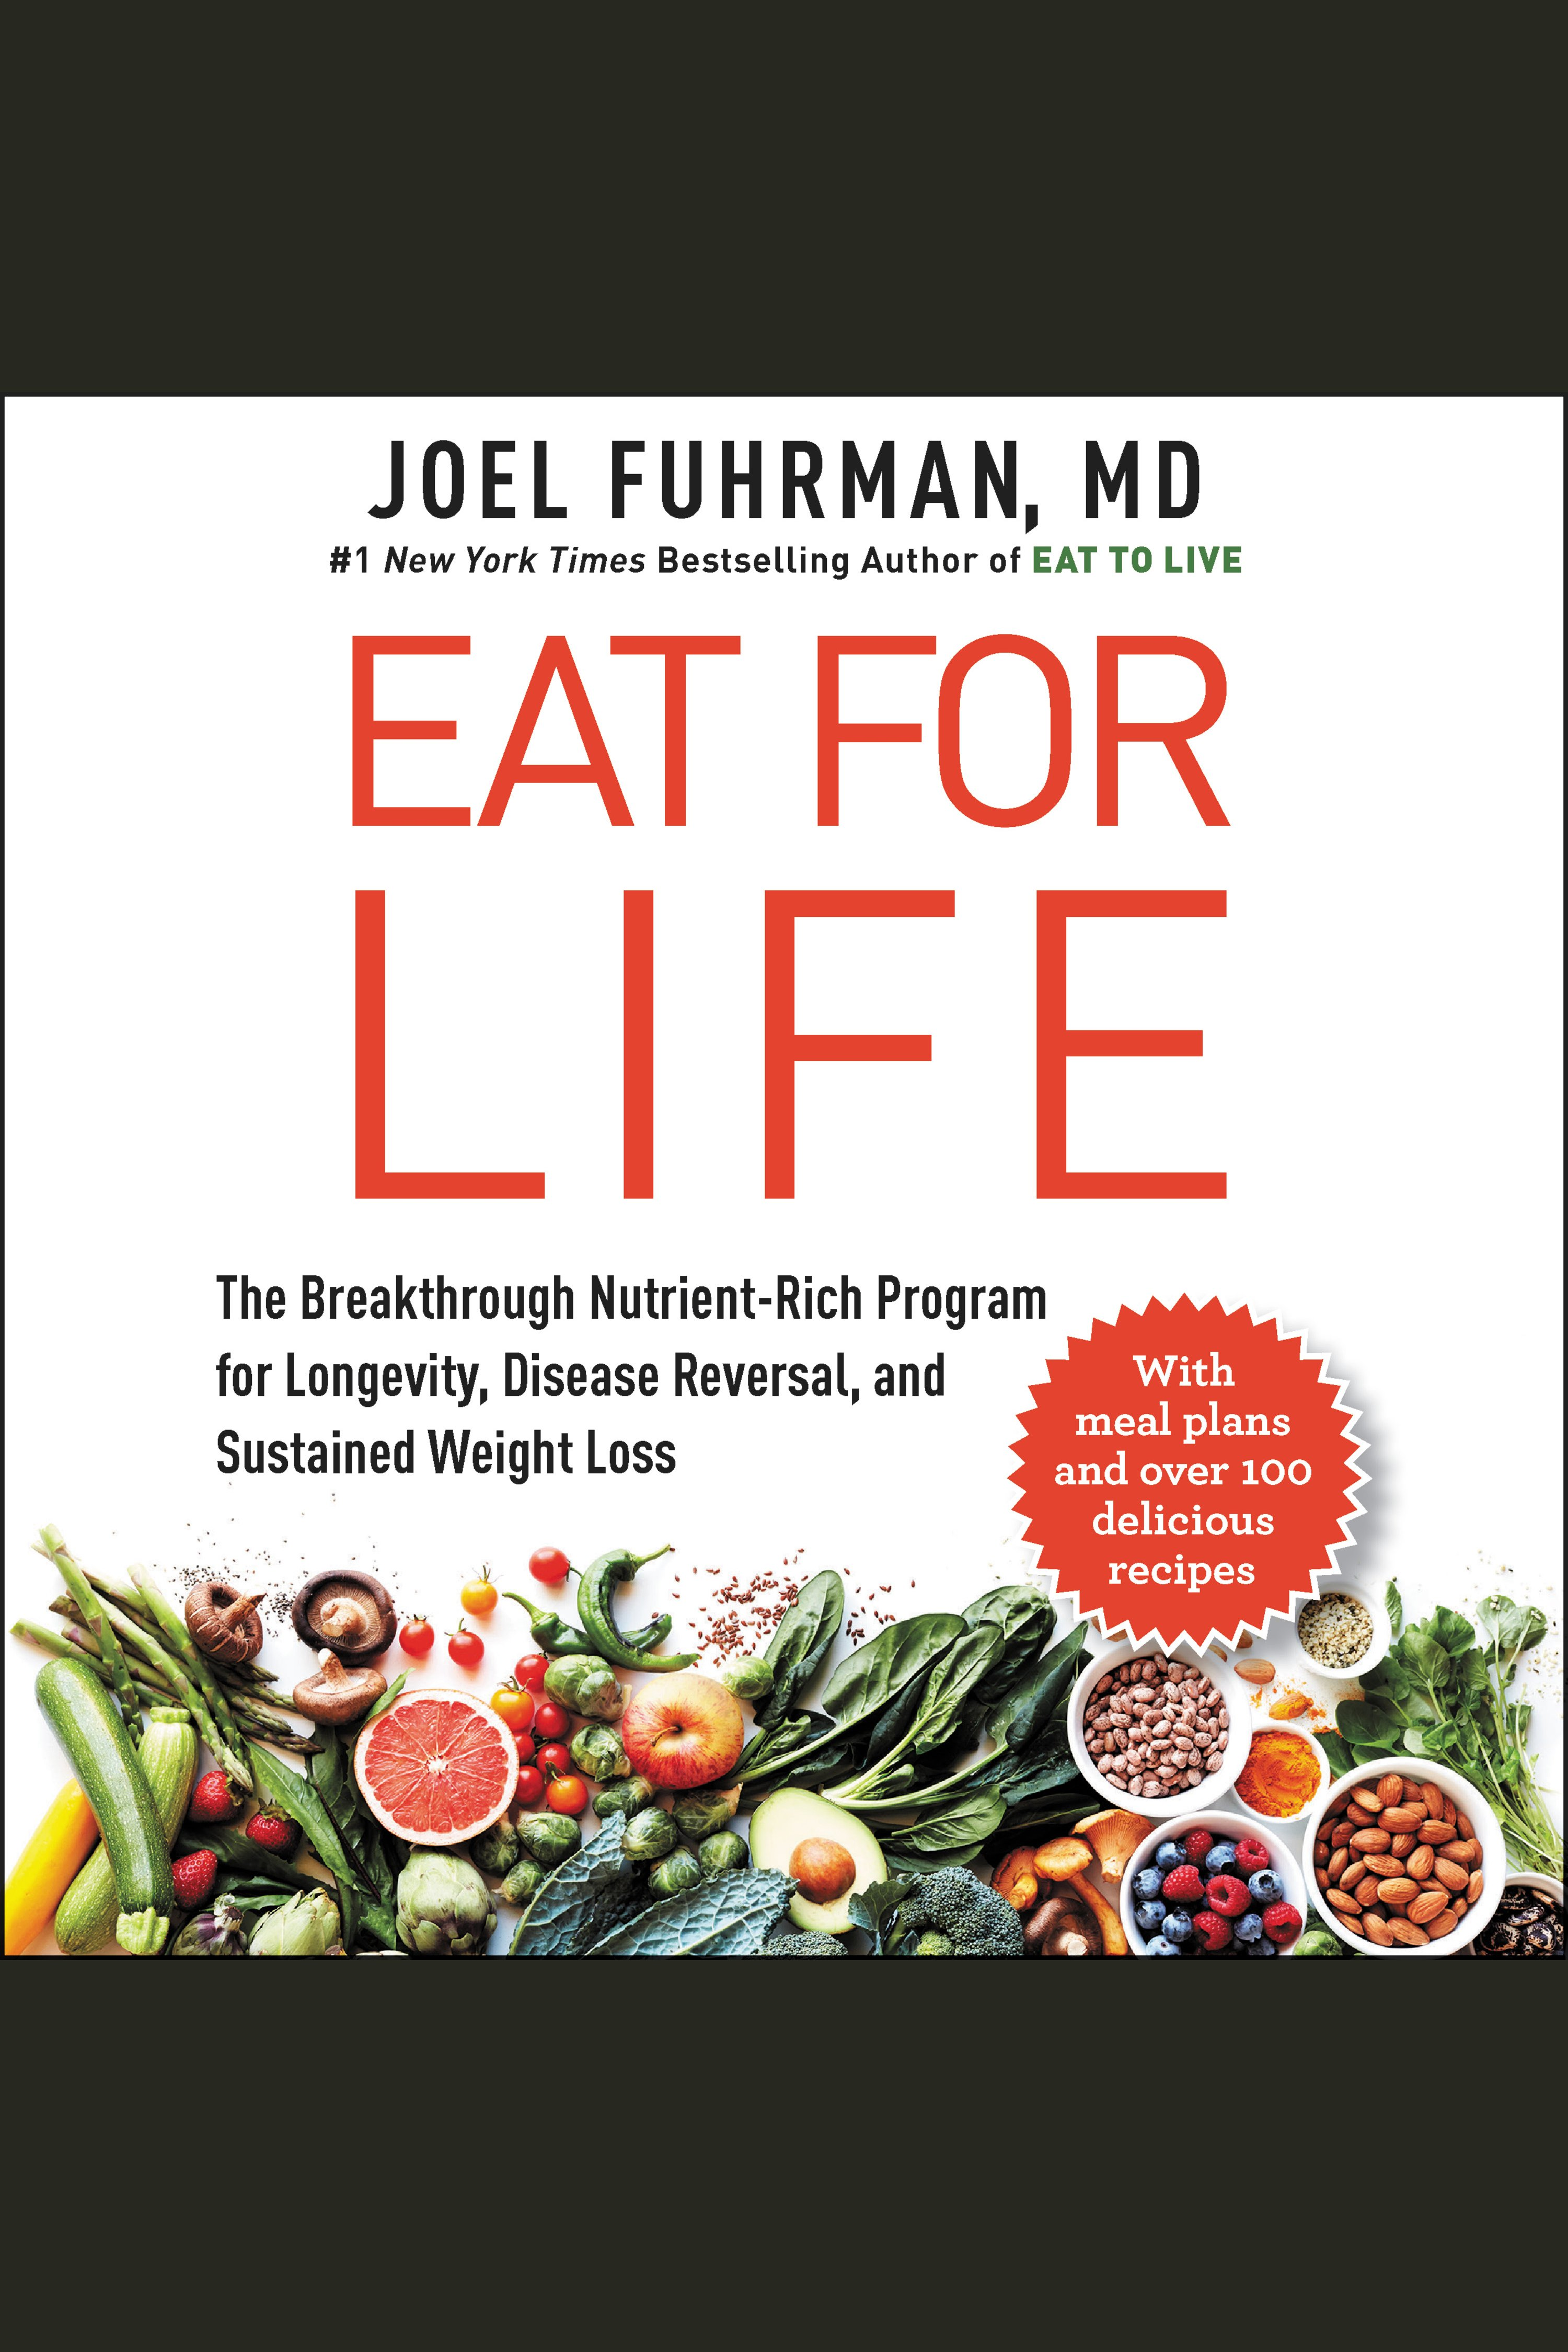 Eat for Life The Breakthrough Nutrient-Rich Program for Longevity, Disease Reversal, and Sustained Weight Loss